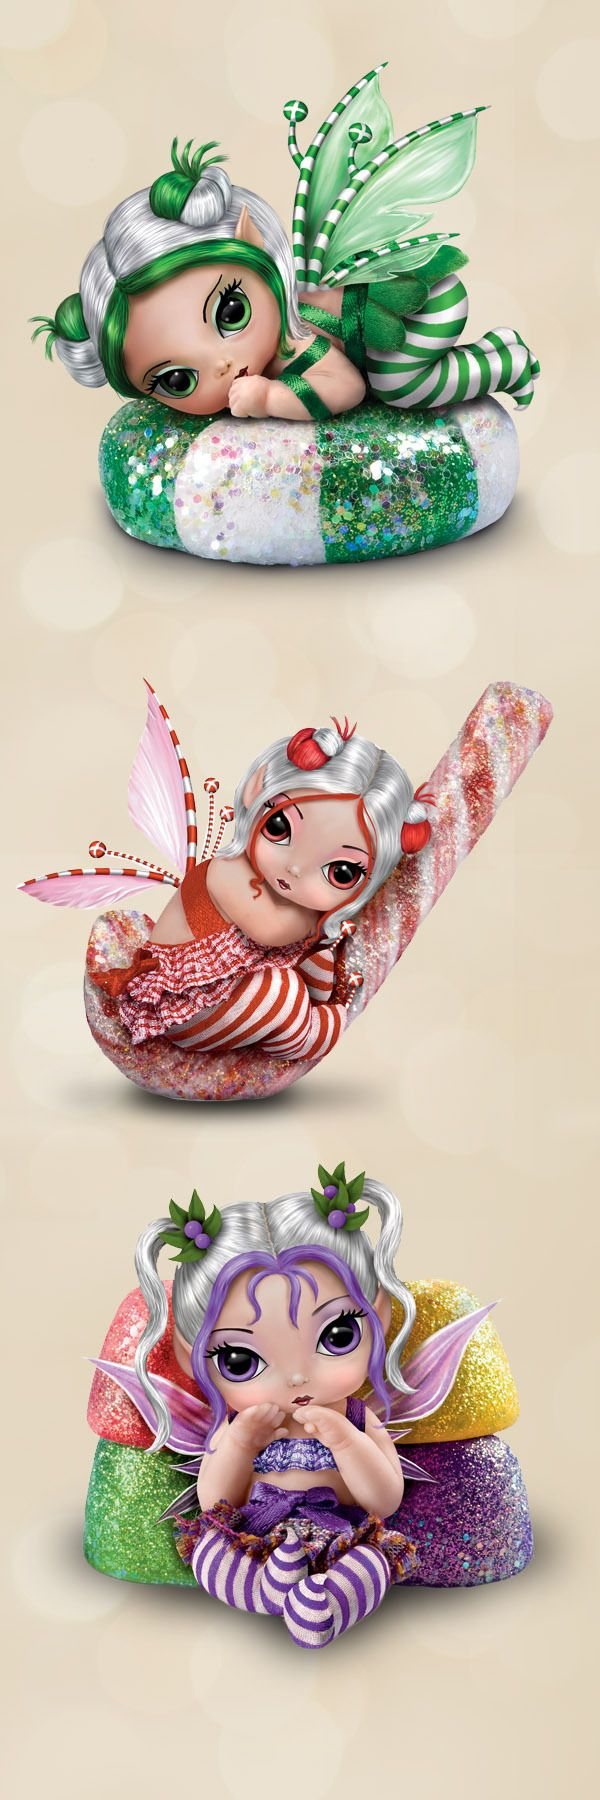 Sweeten up the Christmas season with this festive fantasy art fairy doll collection by acclaimed artist Jasmine Becket-Griffith!